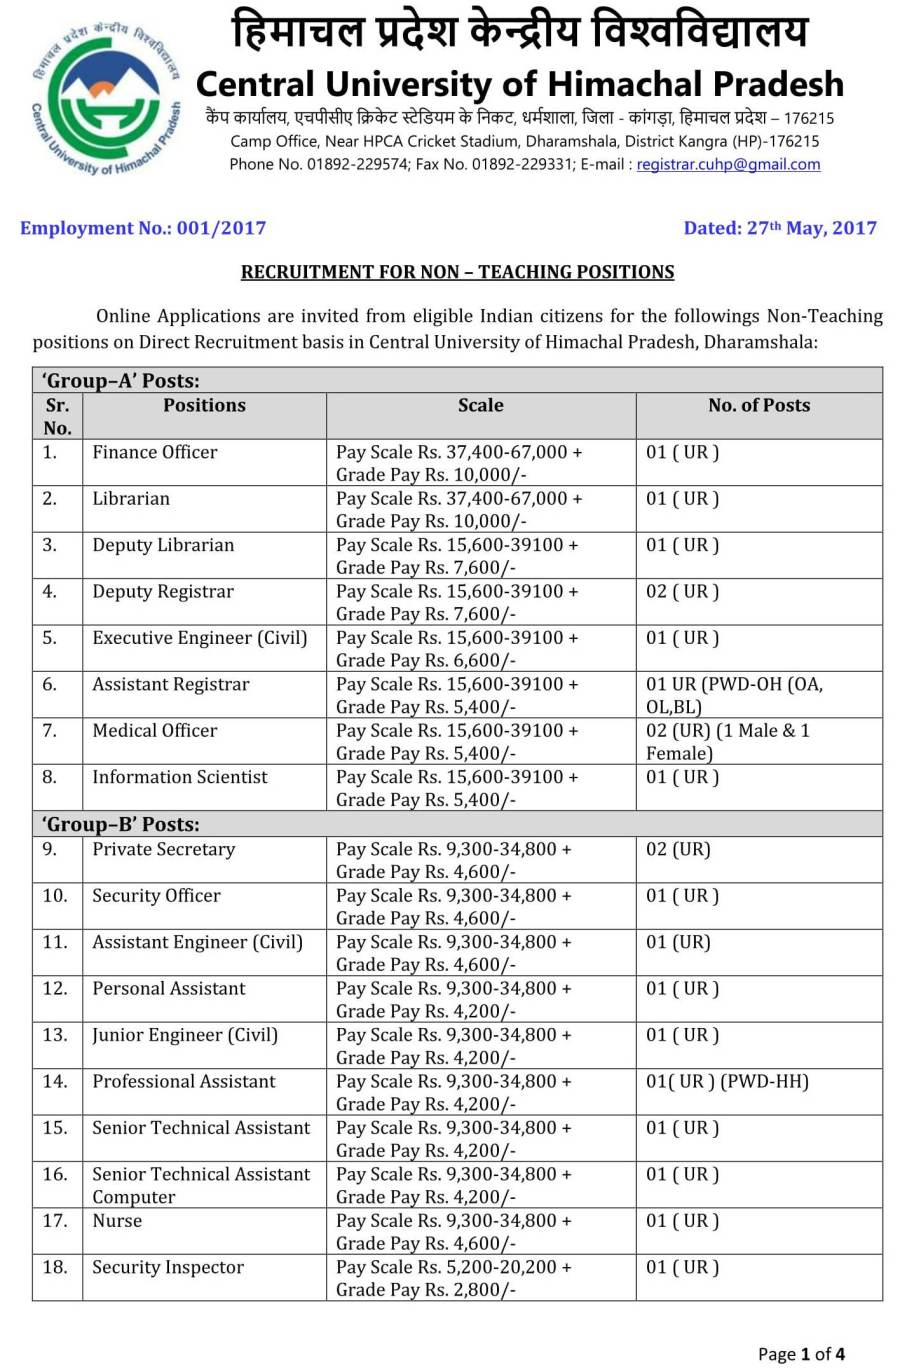 Emp. Notice 01-2017_Non-Teaching Positions Advertisement_Final (English)_27.05.2017-1.jpg